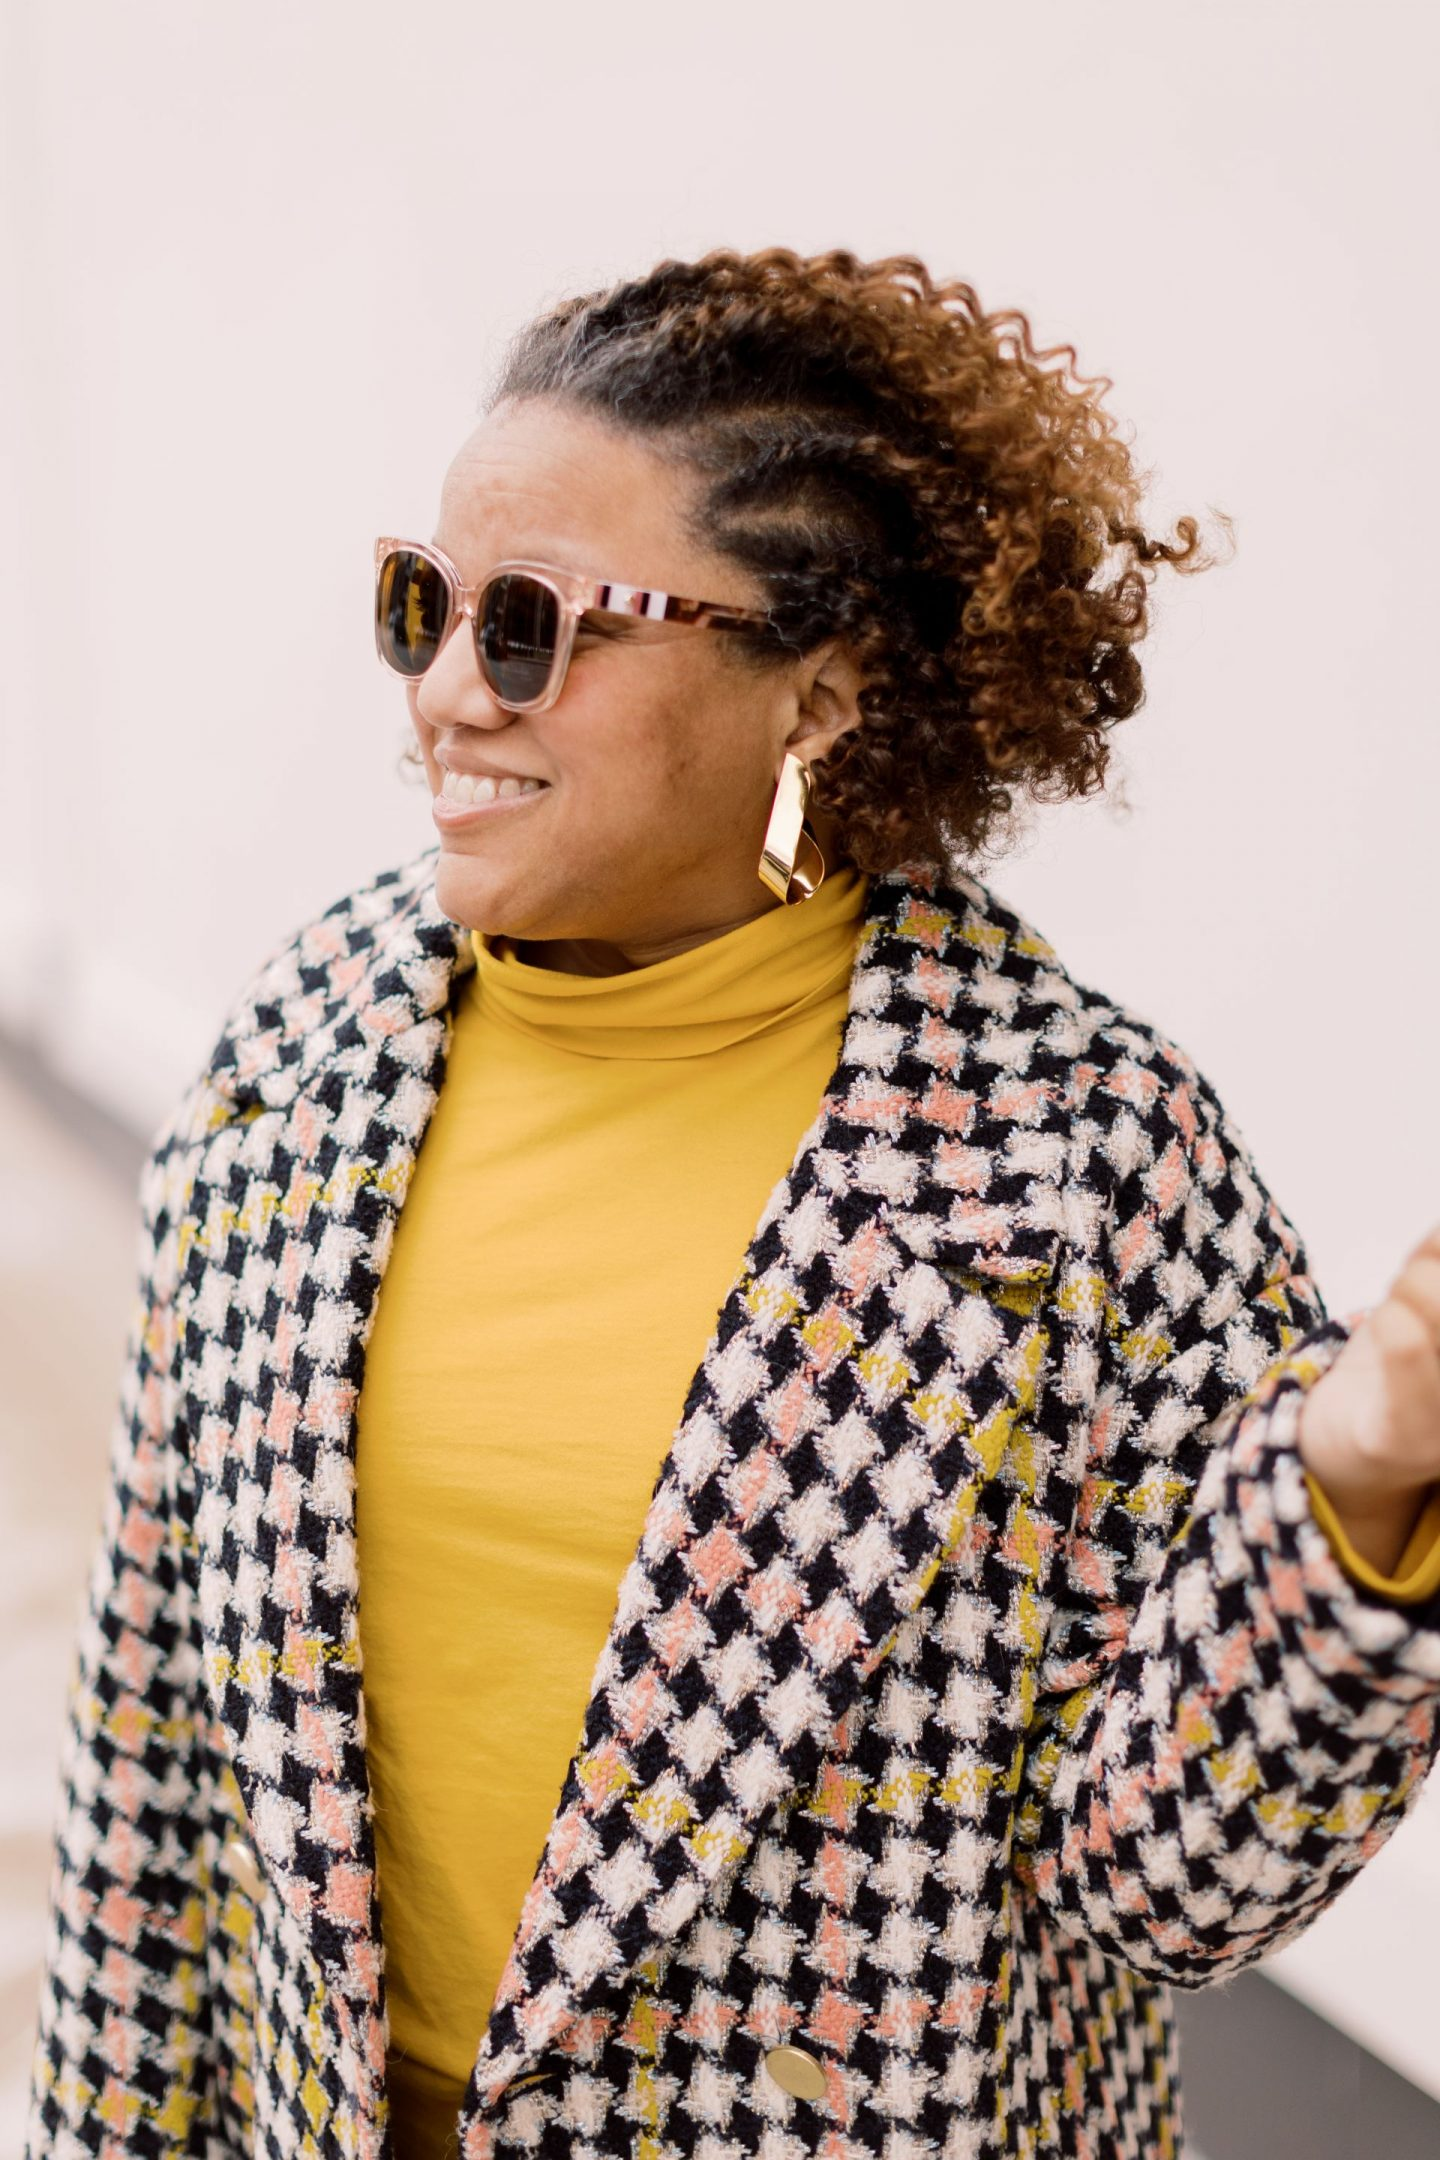 Cute Coats by popular Kentucky fashion blog, Really Rynetta: image of a woman wearing a J. Crew Tissue Turtleneck, gold statement earrings, sunglasses, and a black, white, pink and yellow houndstooth coat.